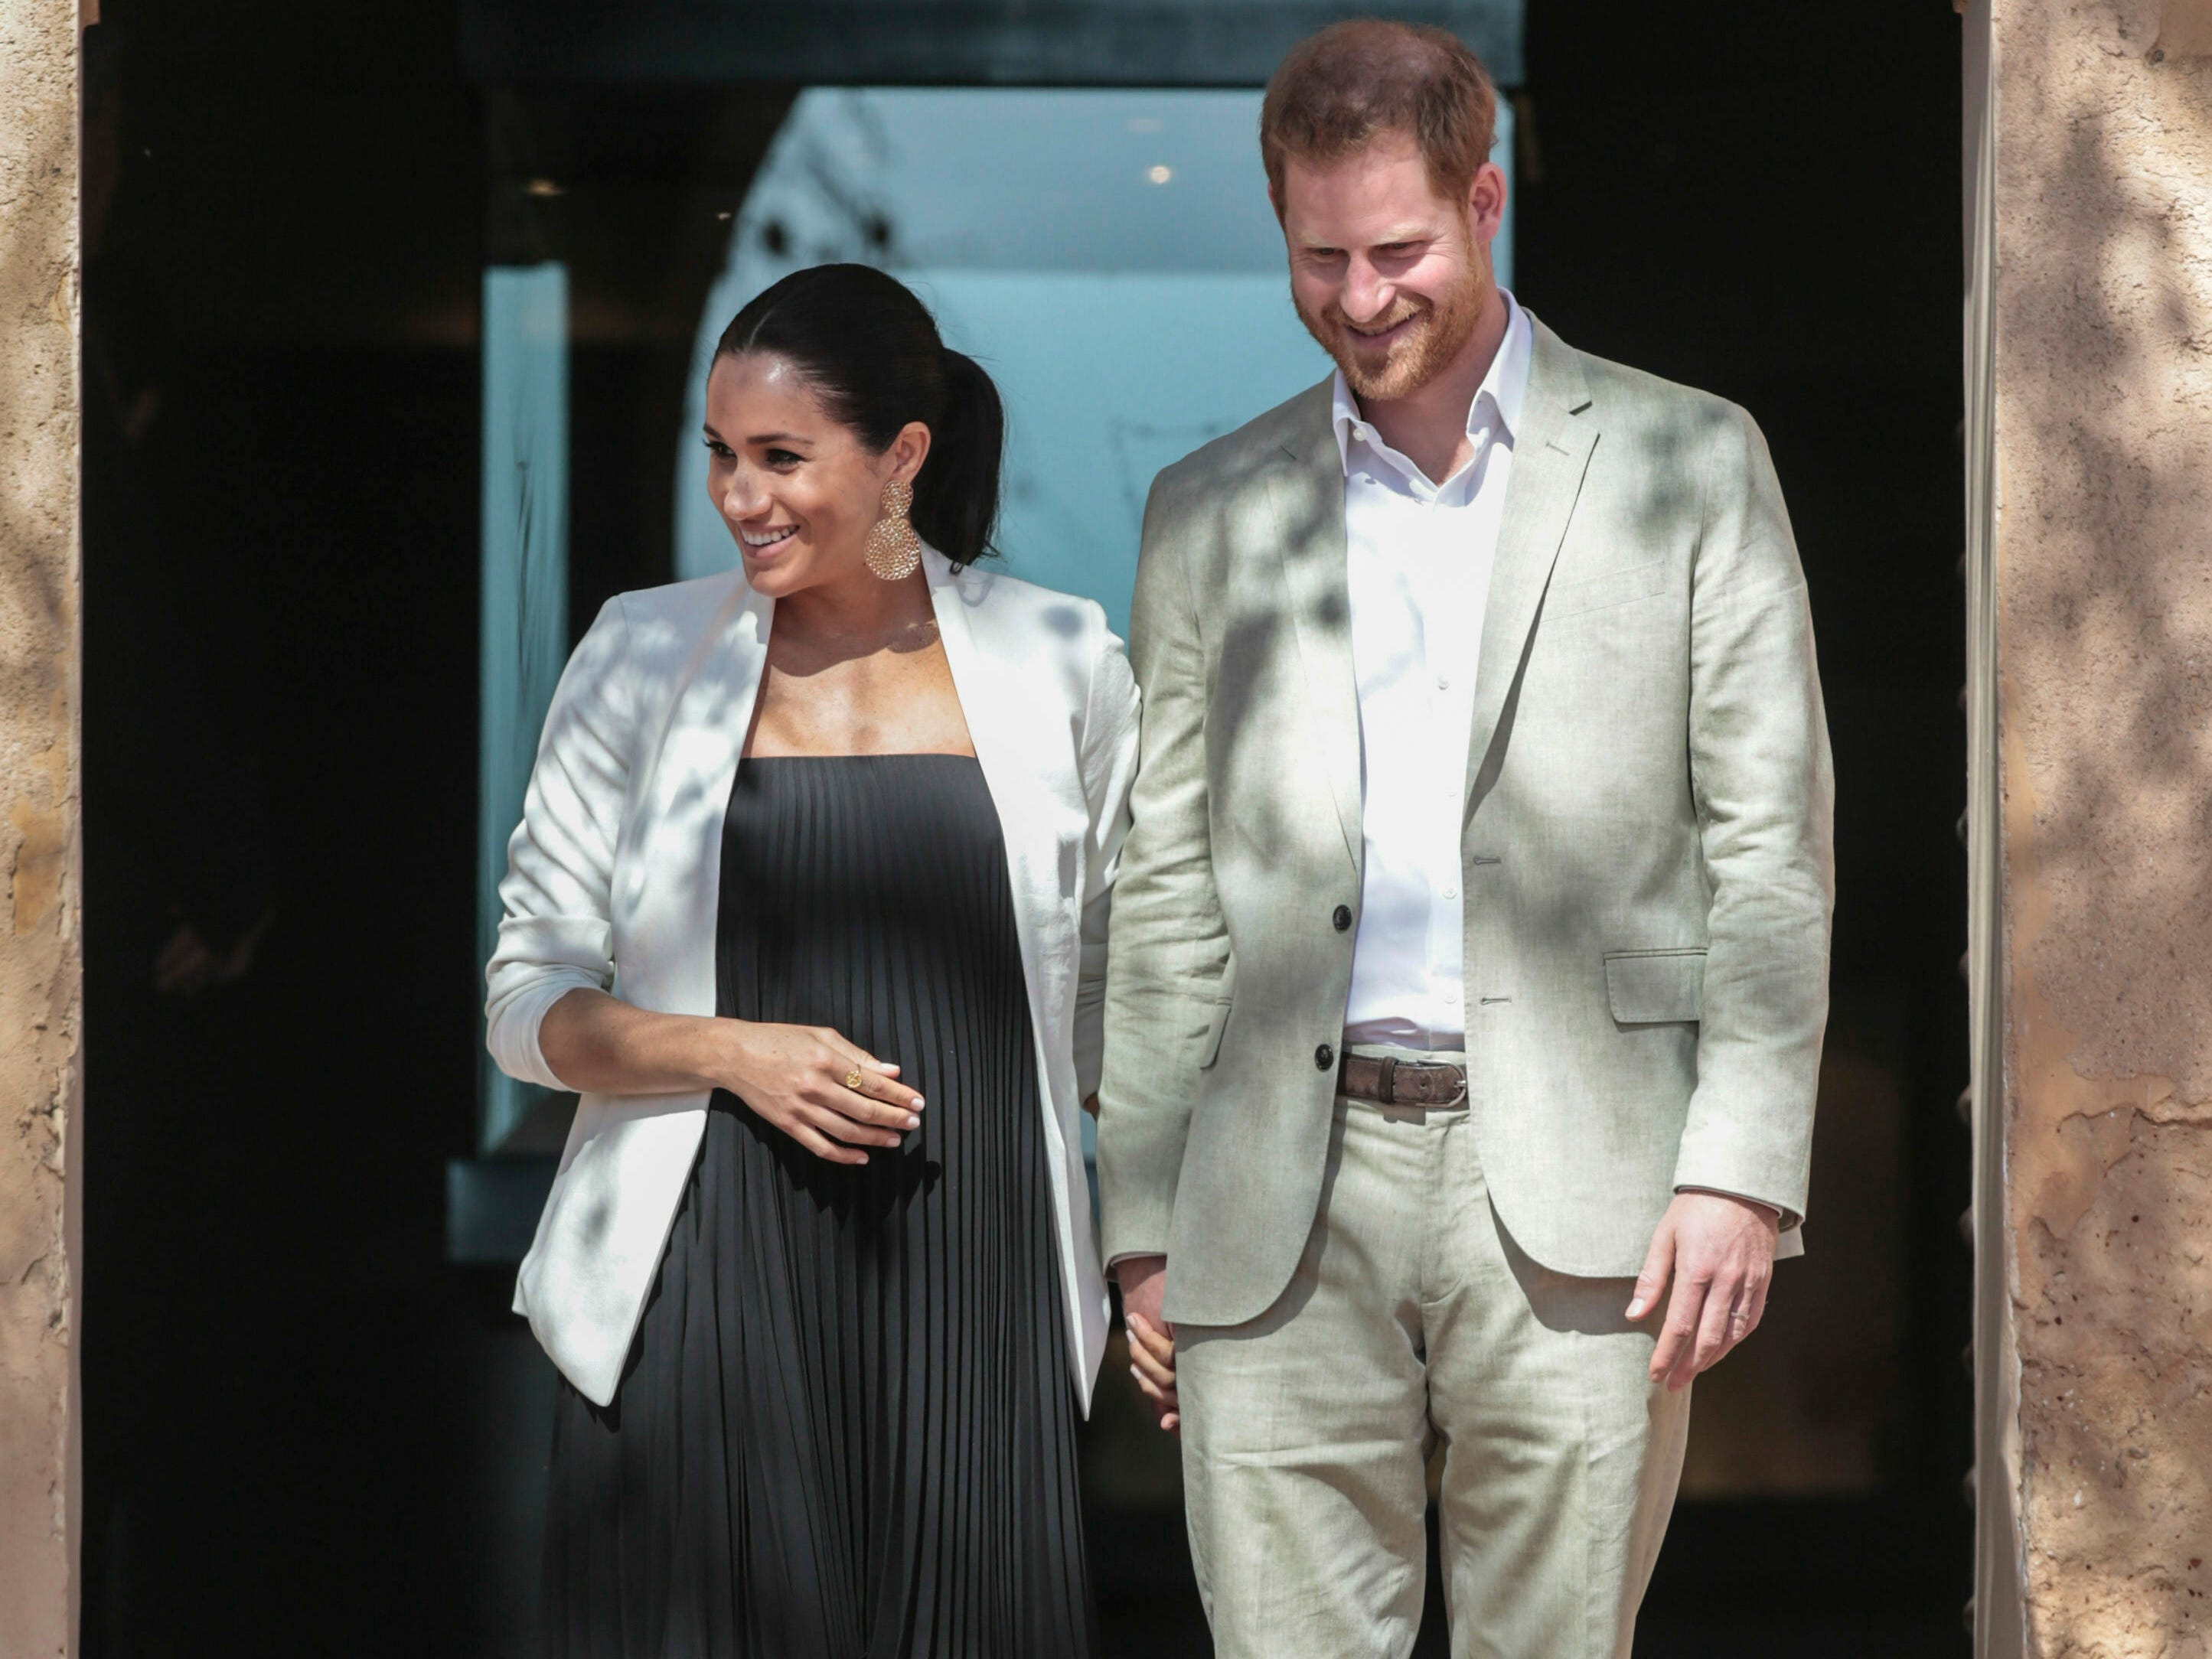 Britain's Prince Harry and Meghan, Duchess of Sussex visit a Social Entrepreneurs event and market in Rabat in Morocco, Monday, Feb. 25, 2019. The Duke and Duchess of Sussex are on a three day visit to the country.